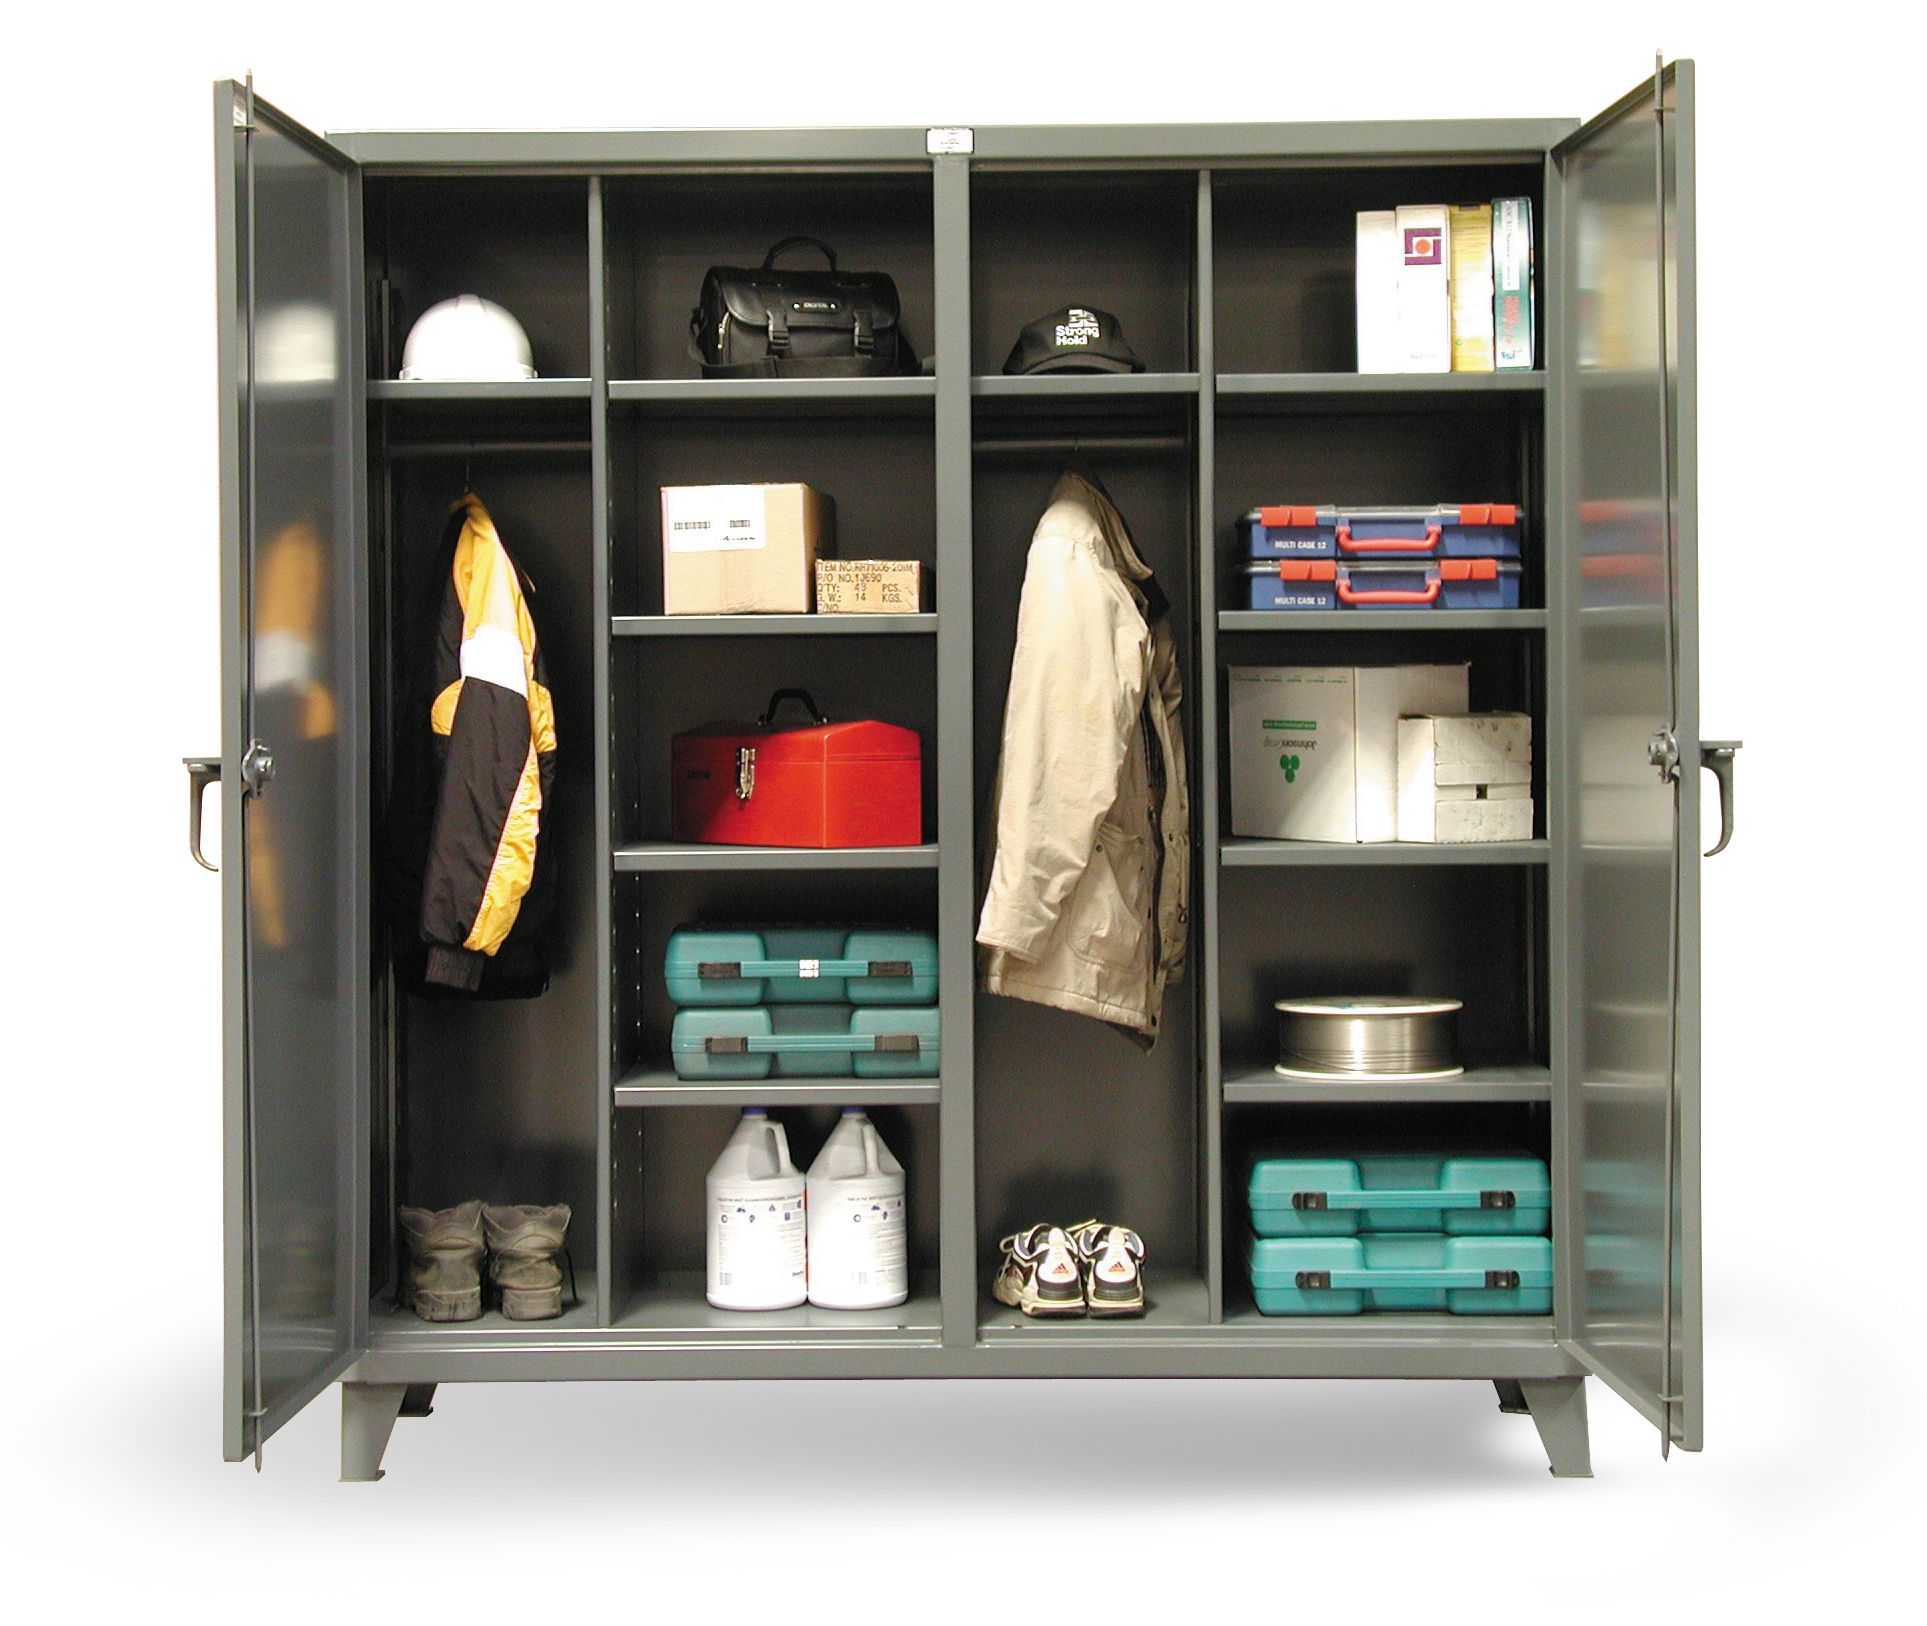 Perfect Double Duty Job Storage   Double Shift Wardrobe Cabinet With Hanger Shelf  And Closet Shelves. Locking Device Can Be Locked With A Standard Padlock.